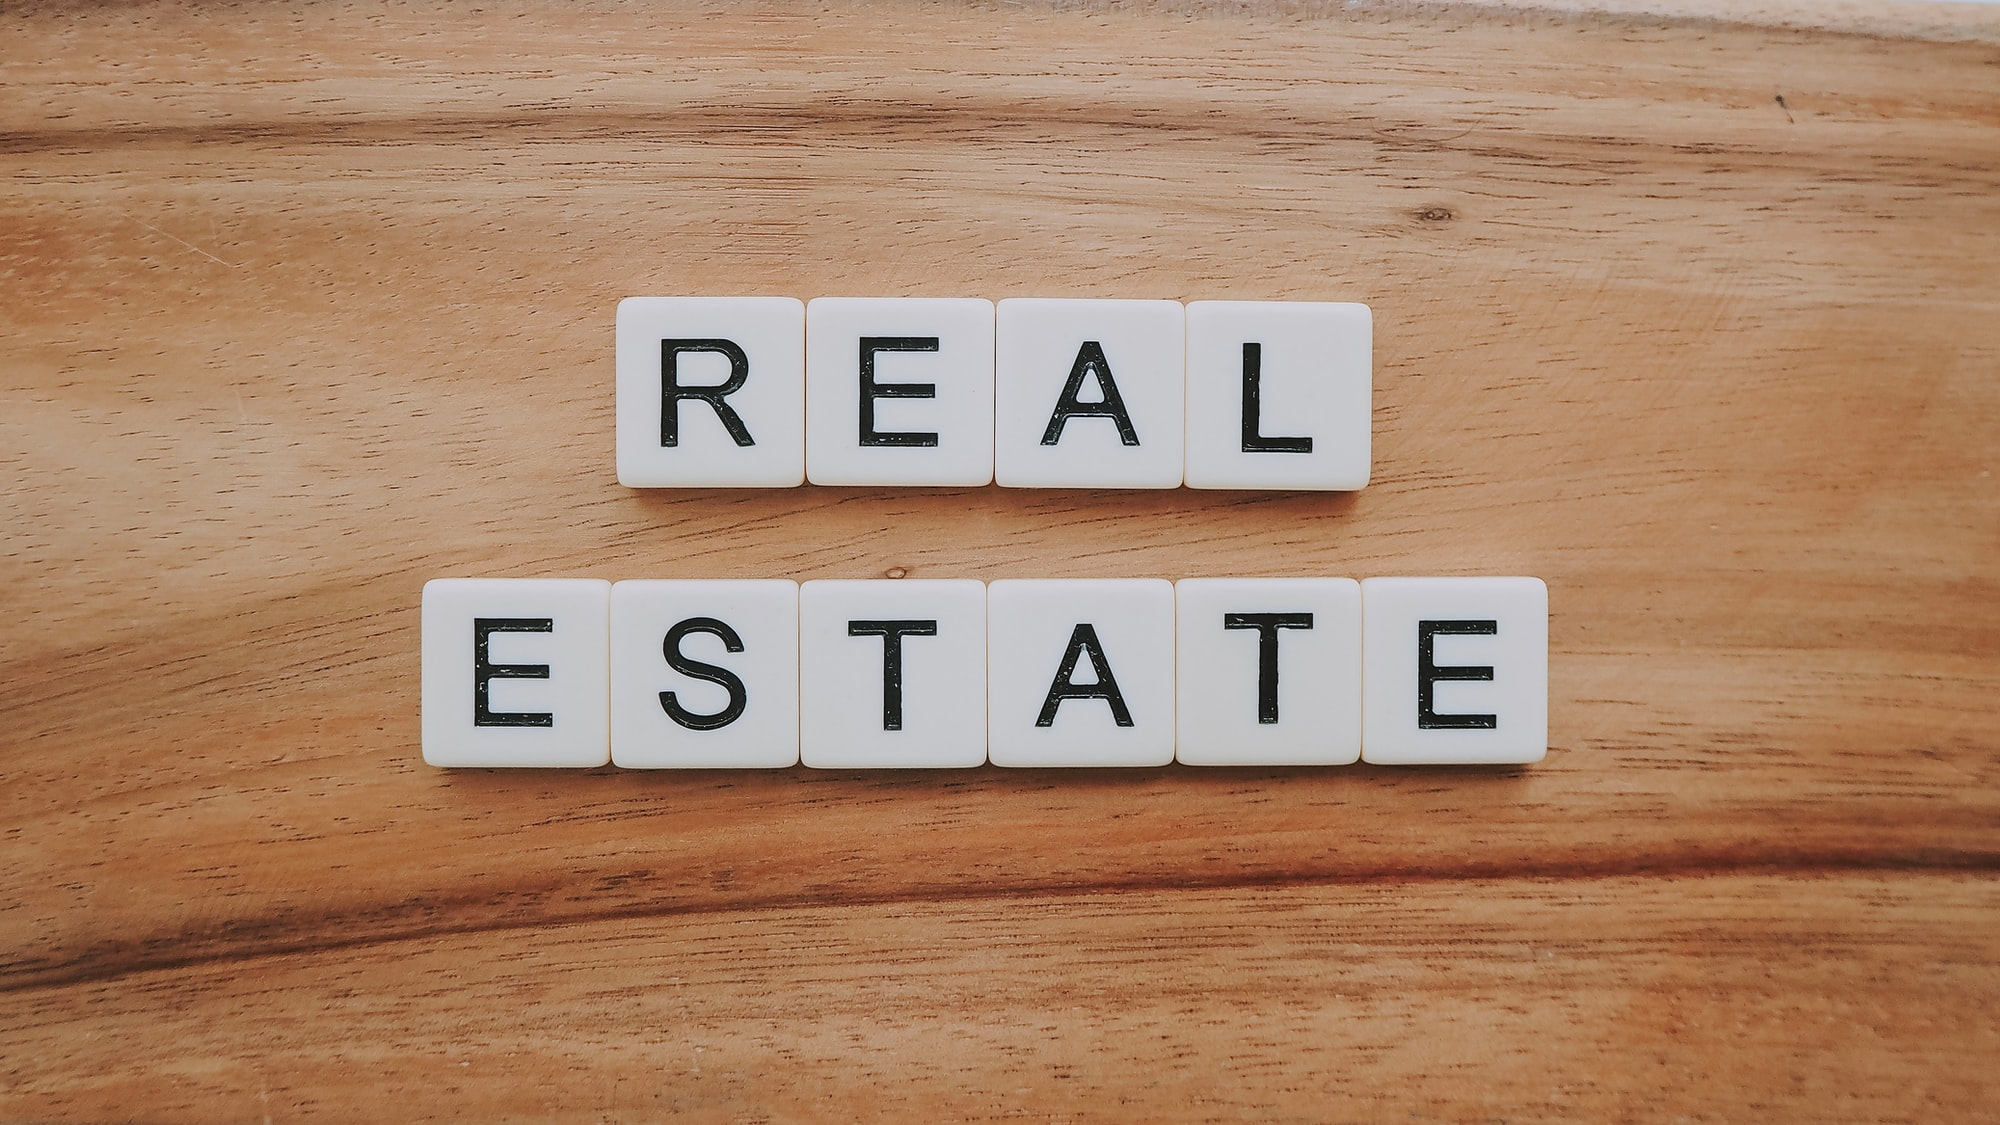 Is Real Estate a Viable Option to Accumulate Wealth?